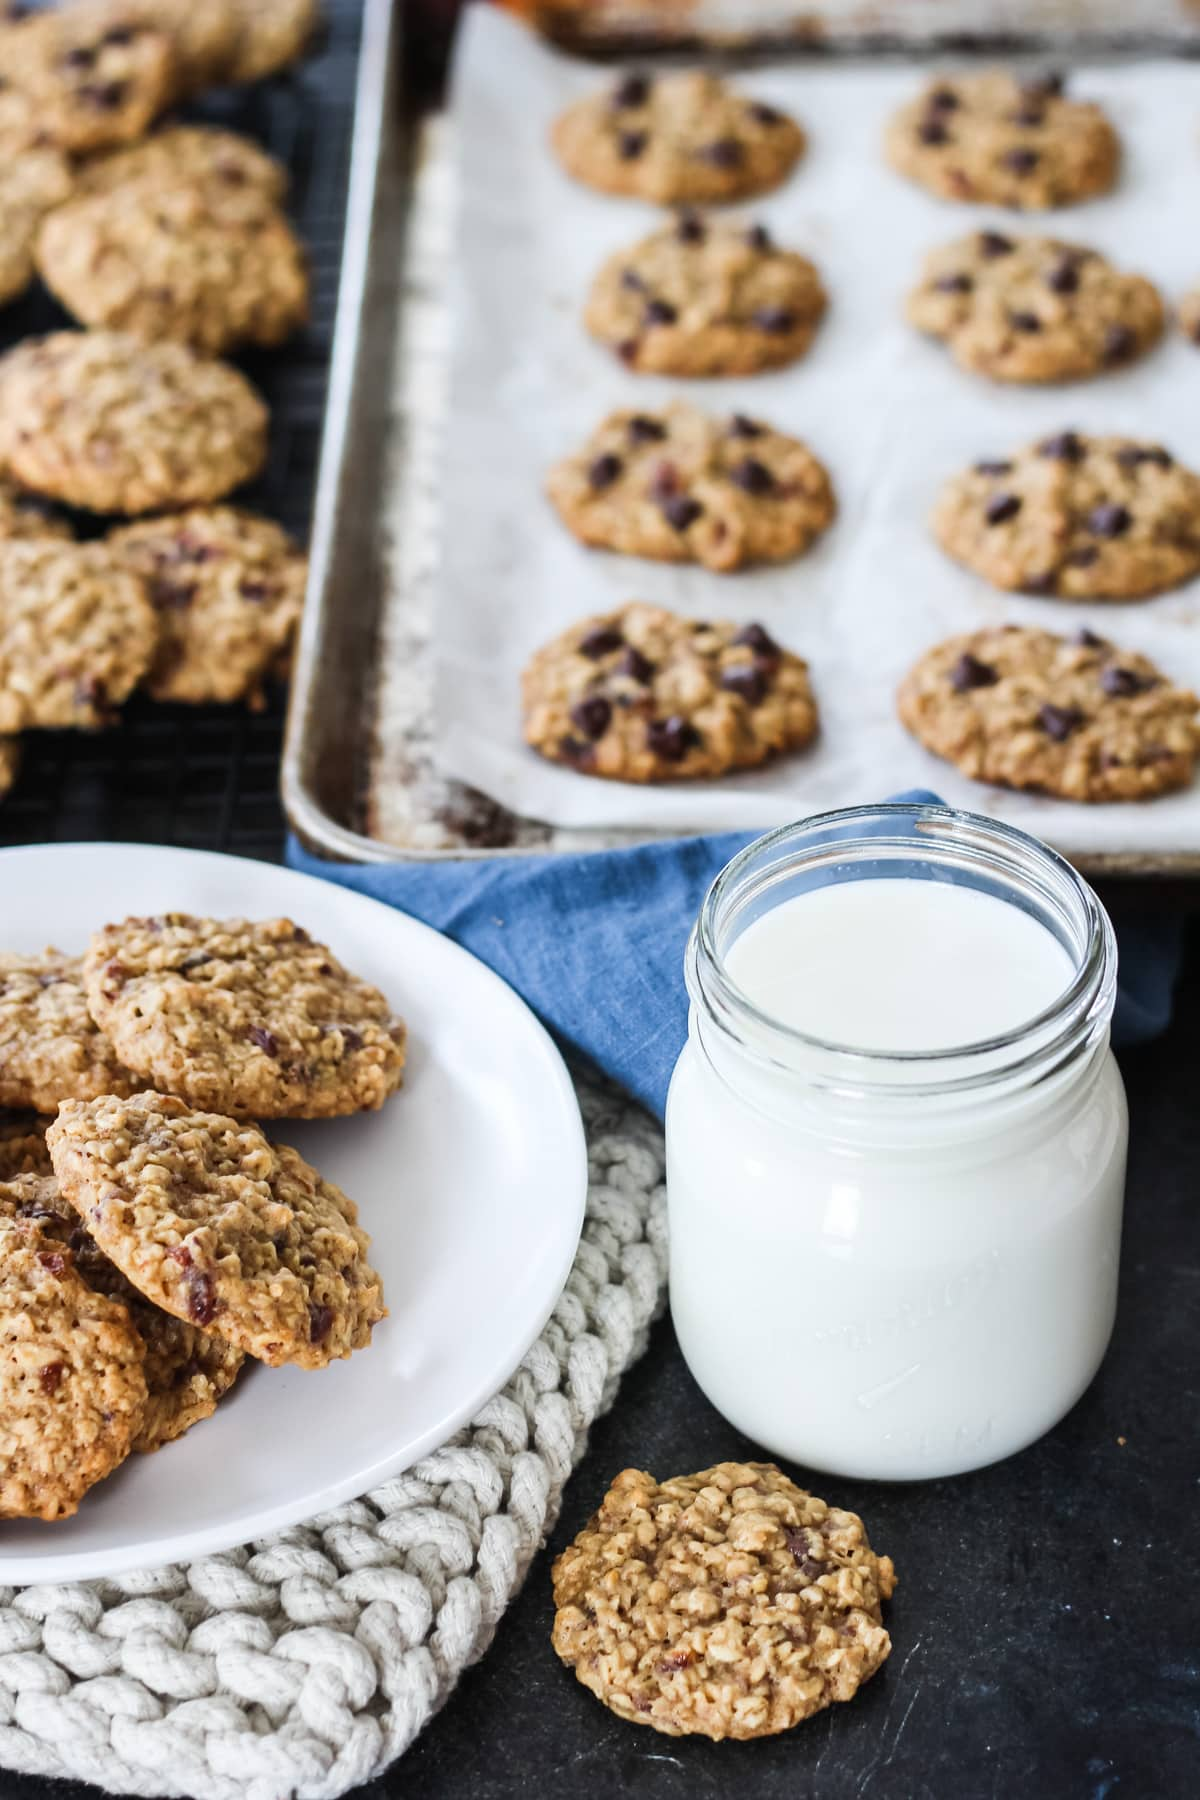 a mason jar glass of milk, a plate of oatmeal raisin cookies. in the background is a cookie sheet of more cookies